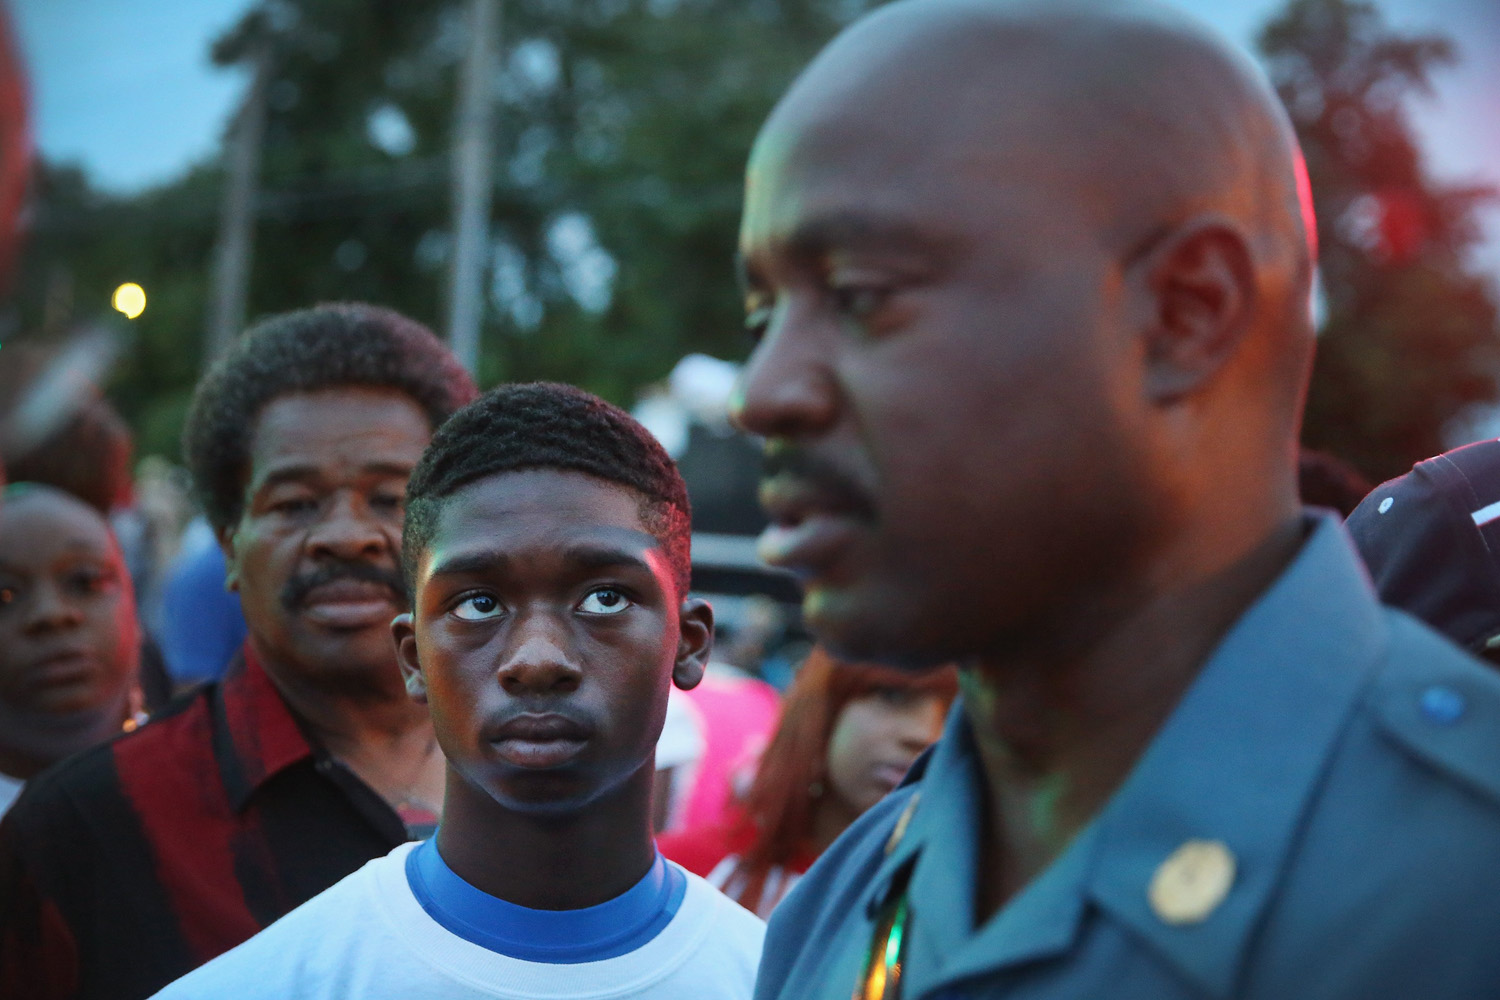 Aug. 16, 2014. Capt. Ronald Johnson (R) of the Missouri State Highway Patrol, who was appointed by the governor to take control of security operations in the city of Ferguson, greets demonstrators in Ferguson, Missouri.